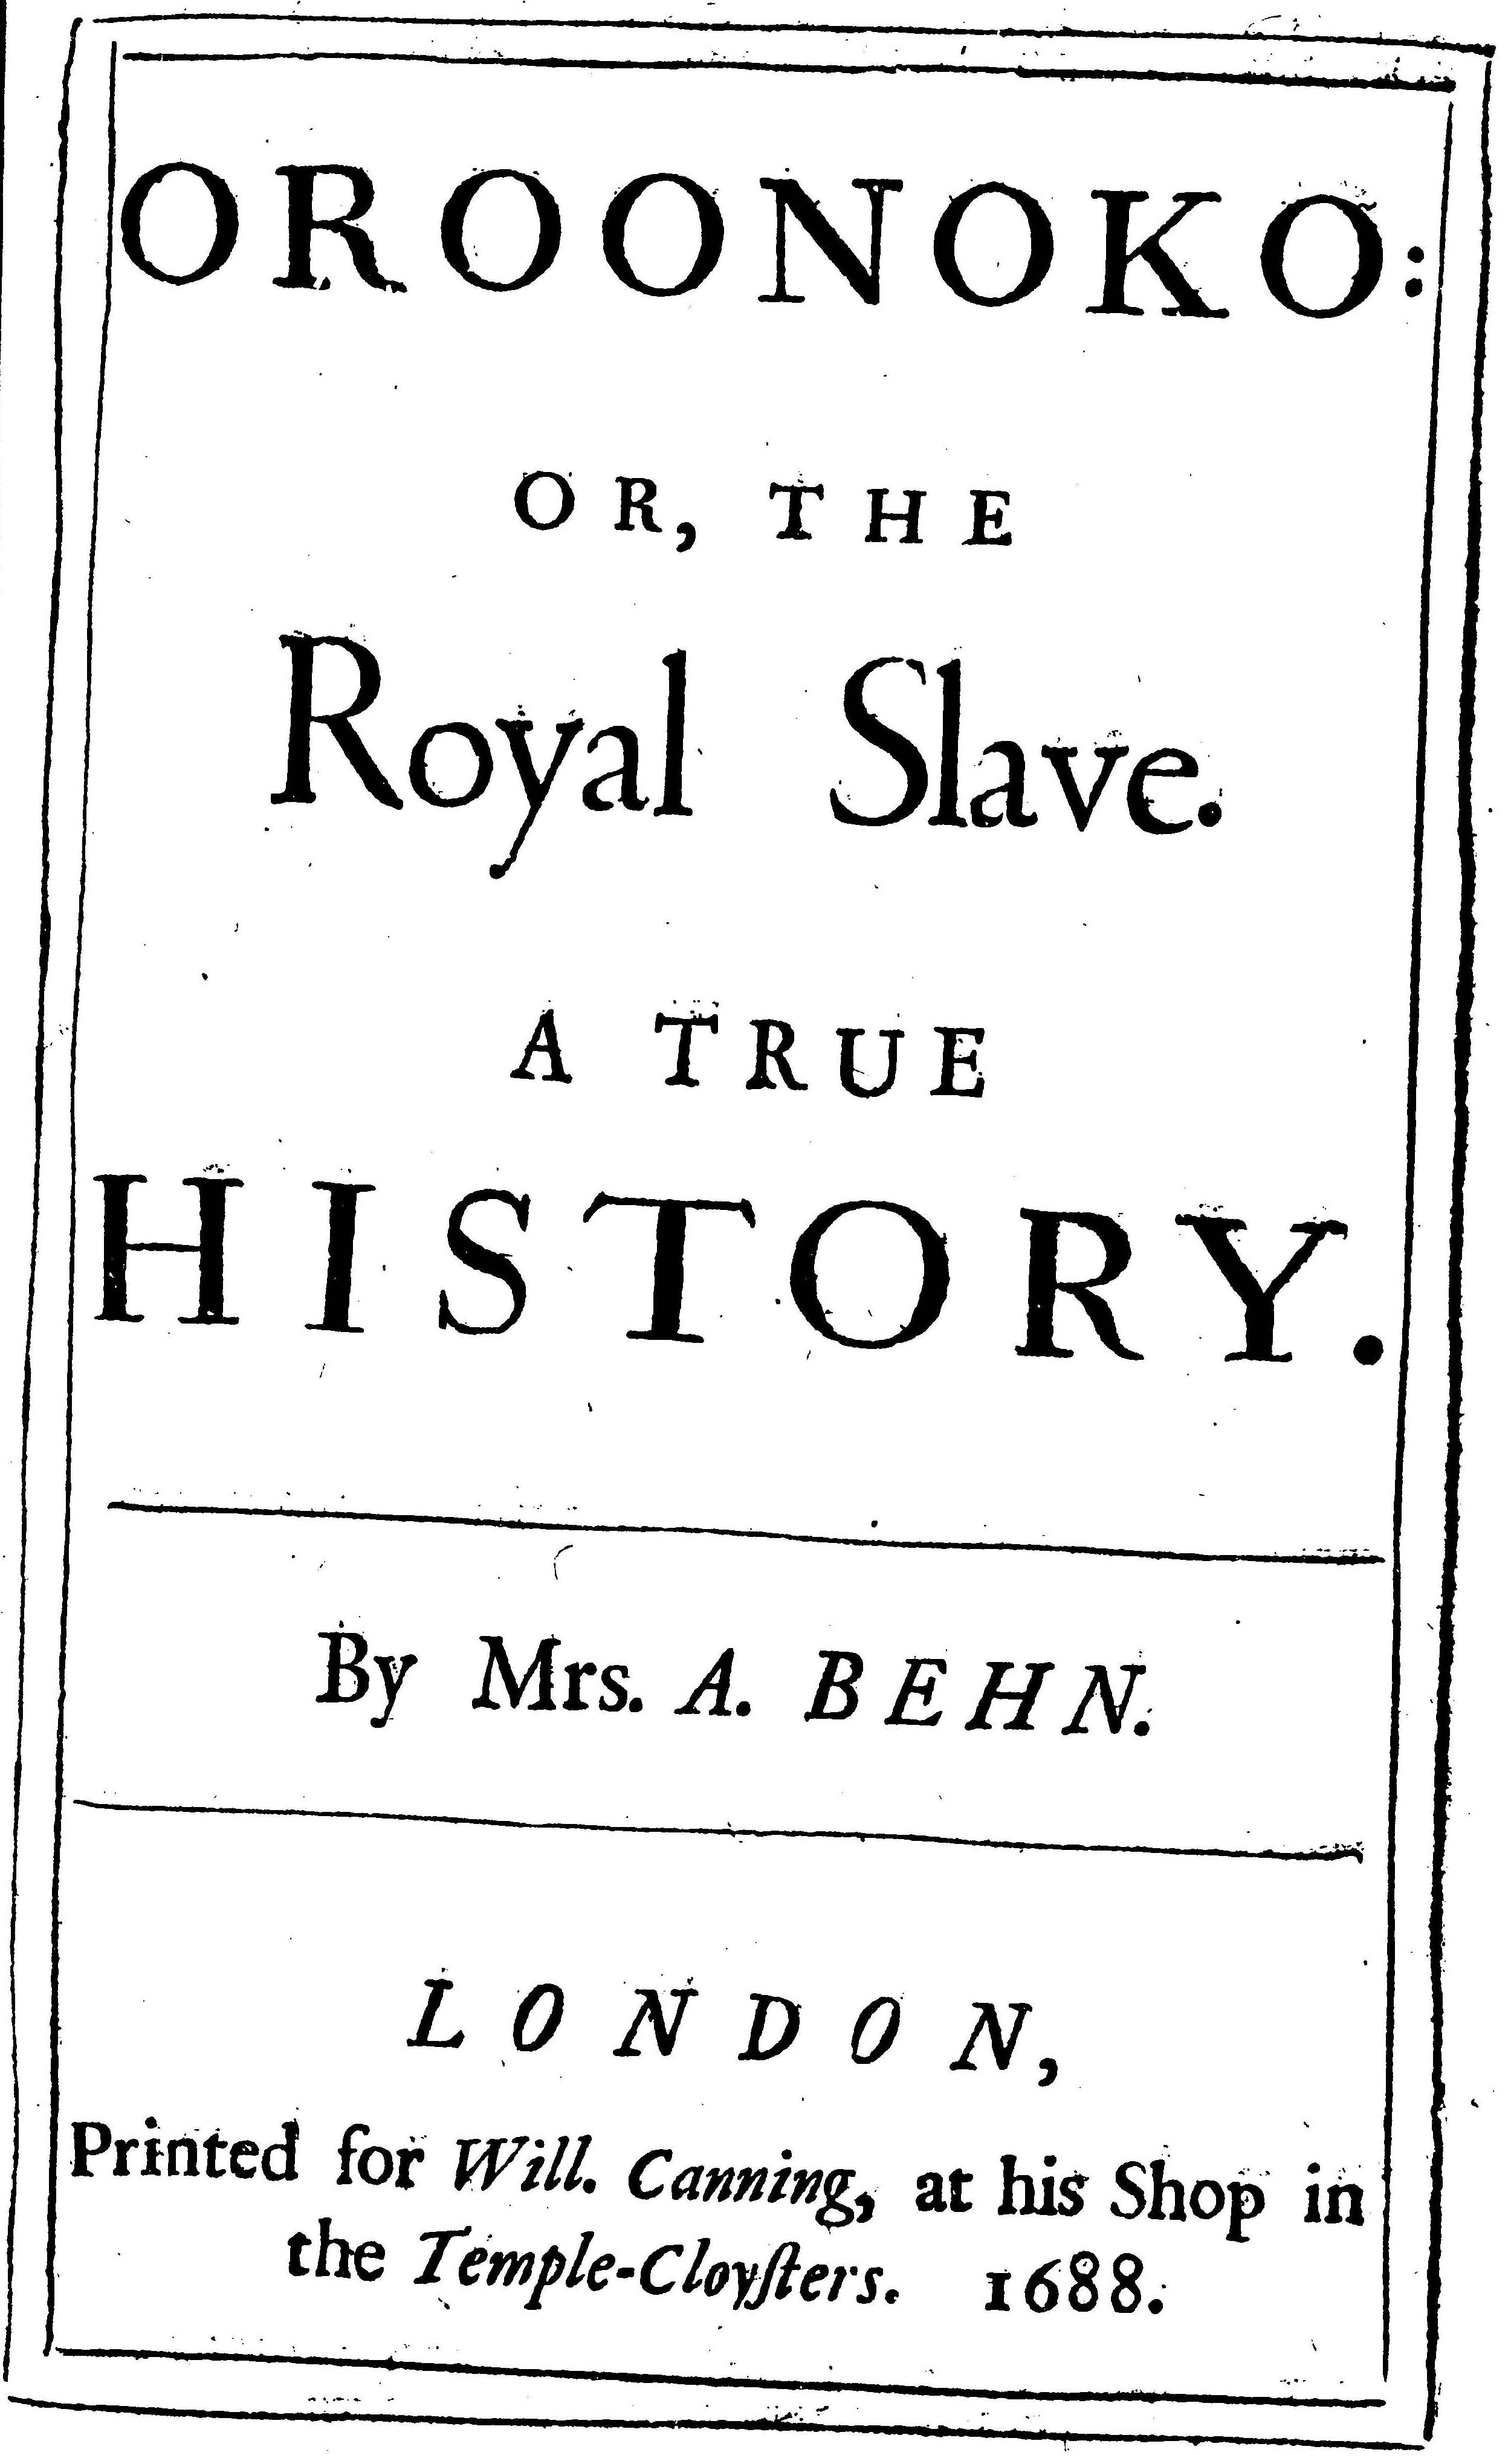 aphra bhens oroonoko the royal slave and candide or optimism essay More about compare and contrast aphra bhen's oroonoko the royal slave and candide, or optimism (the royal slave) by aphra behn essay.